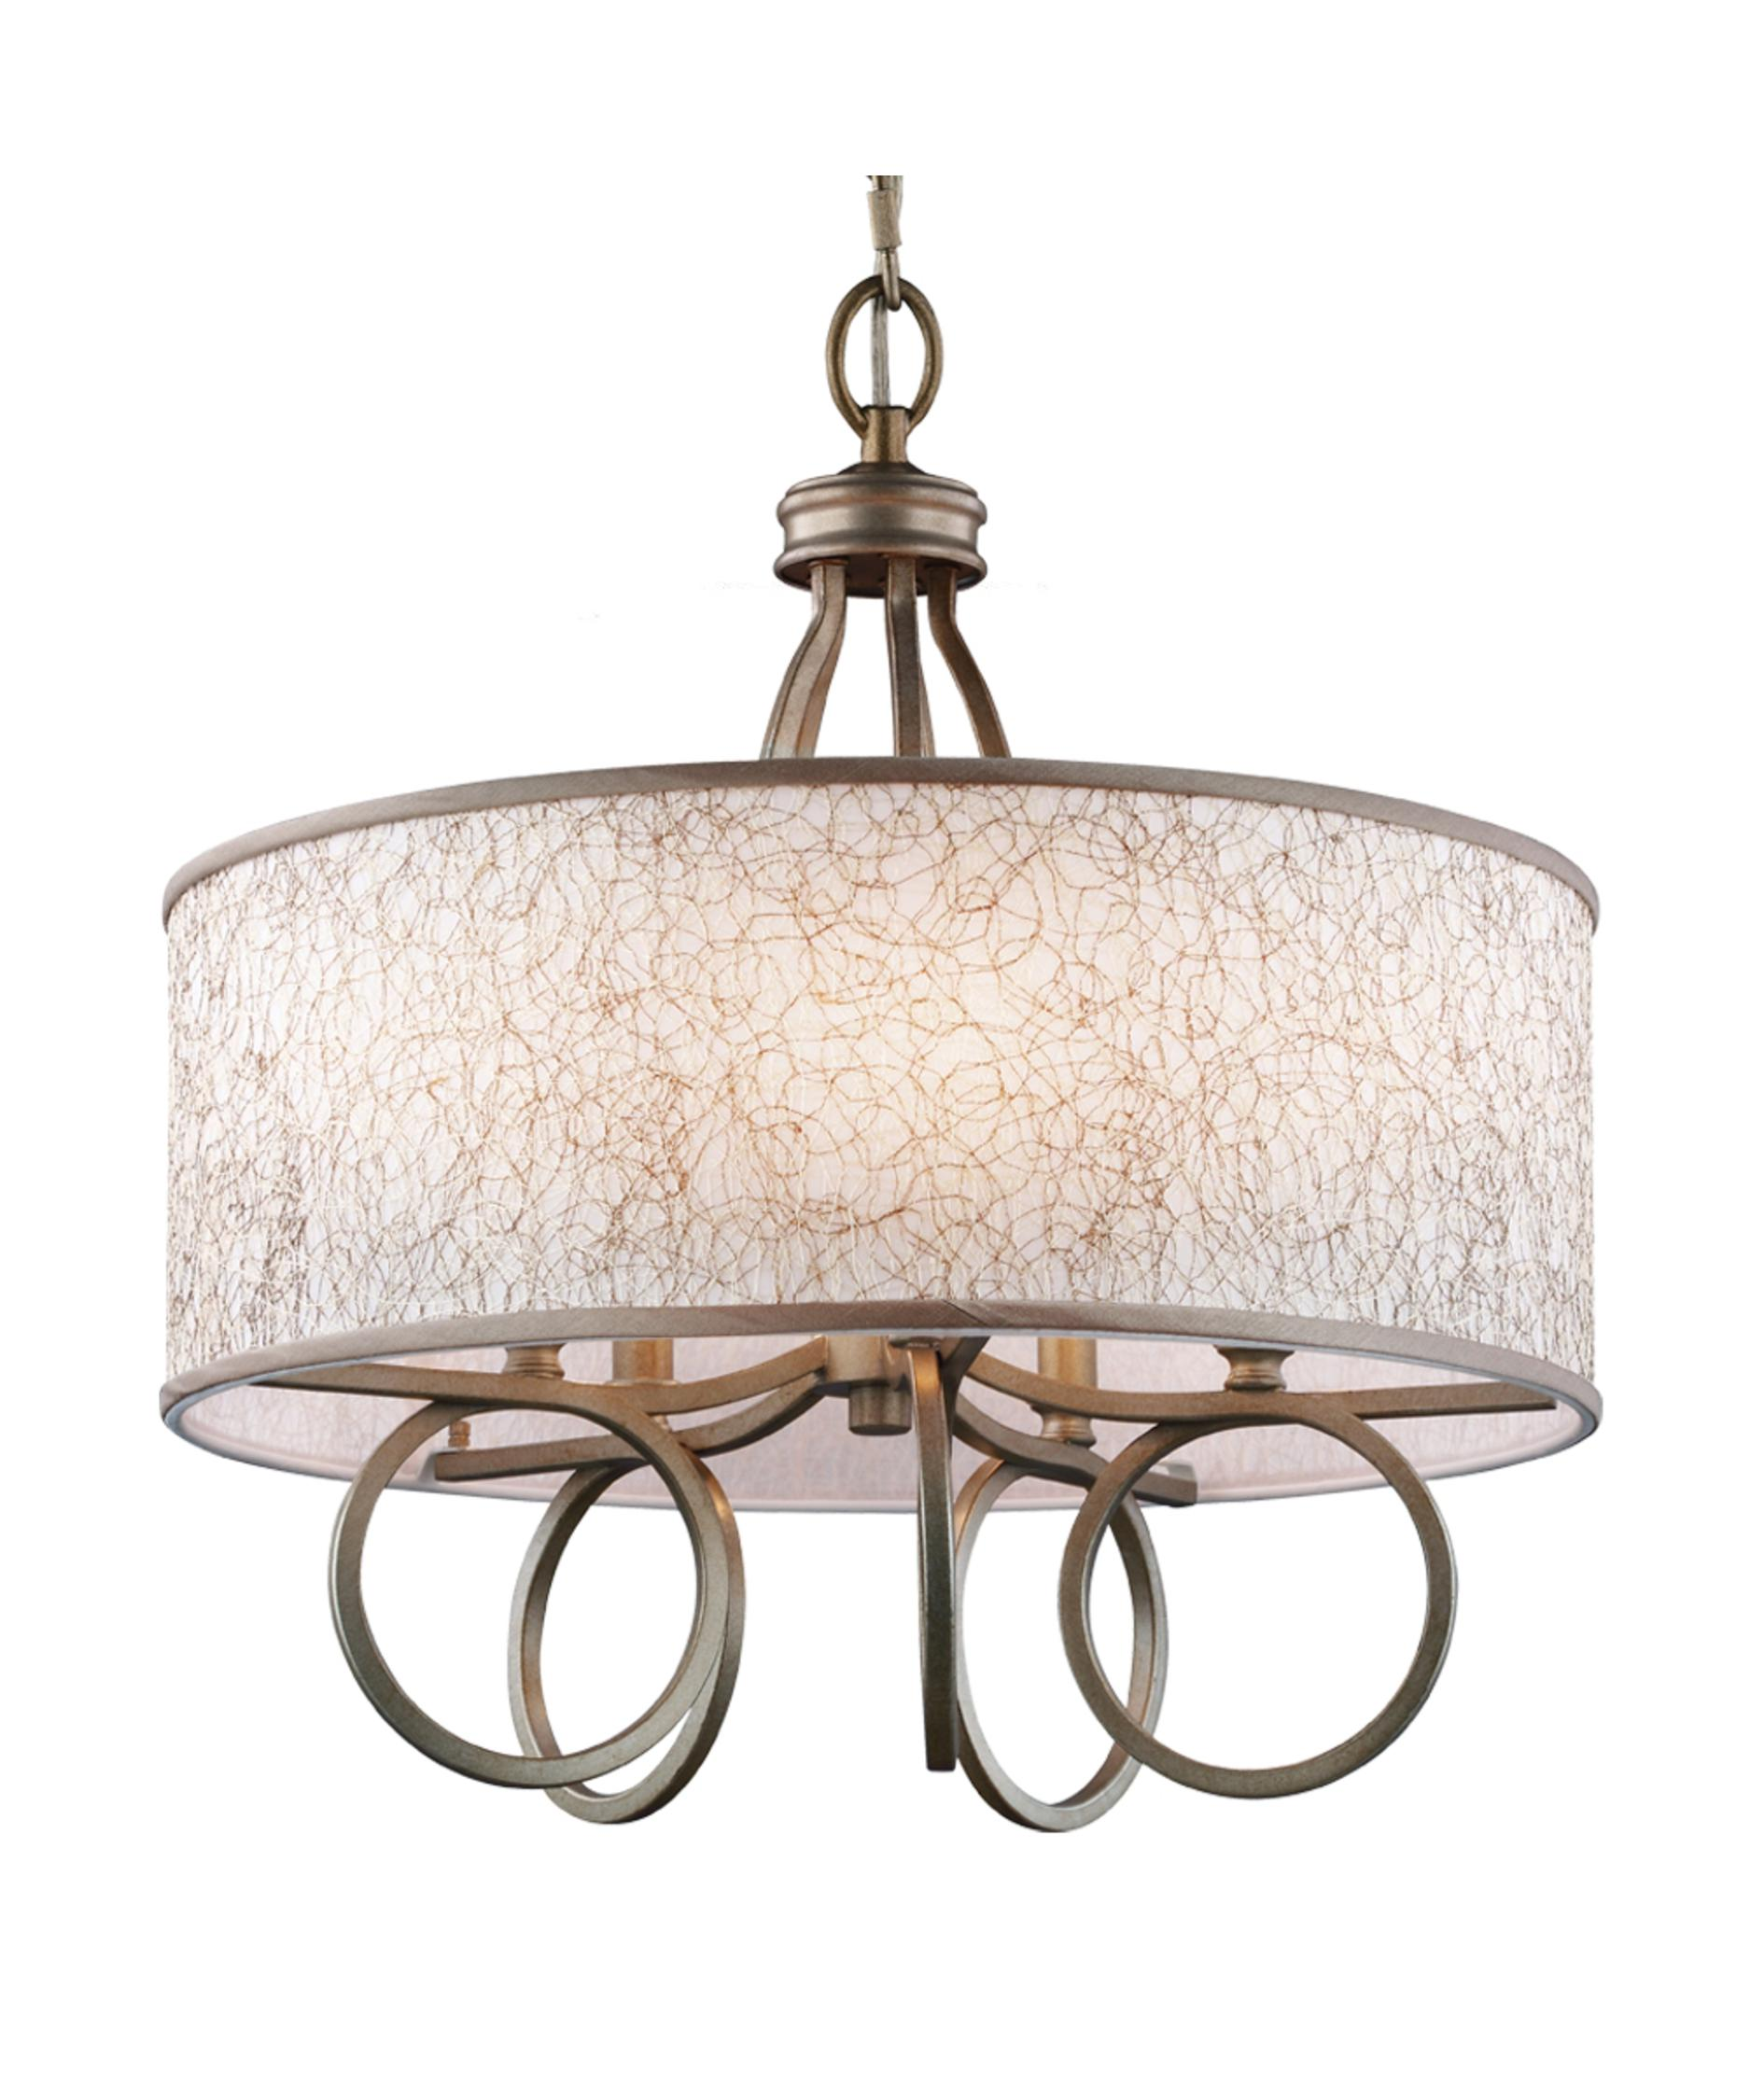 shown in burnished silver finish - Feiss Lighting